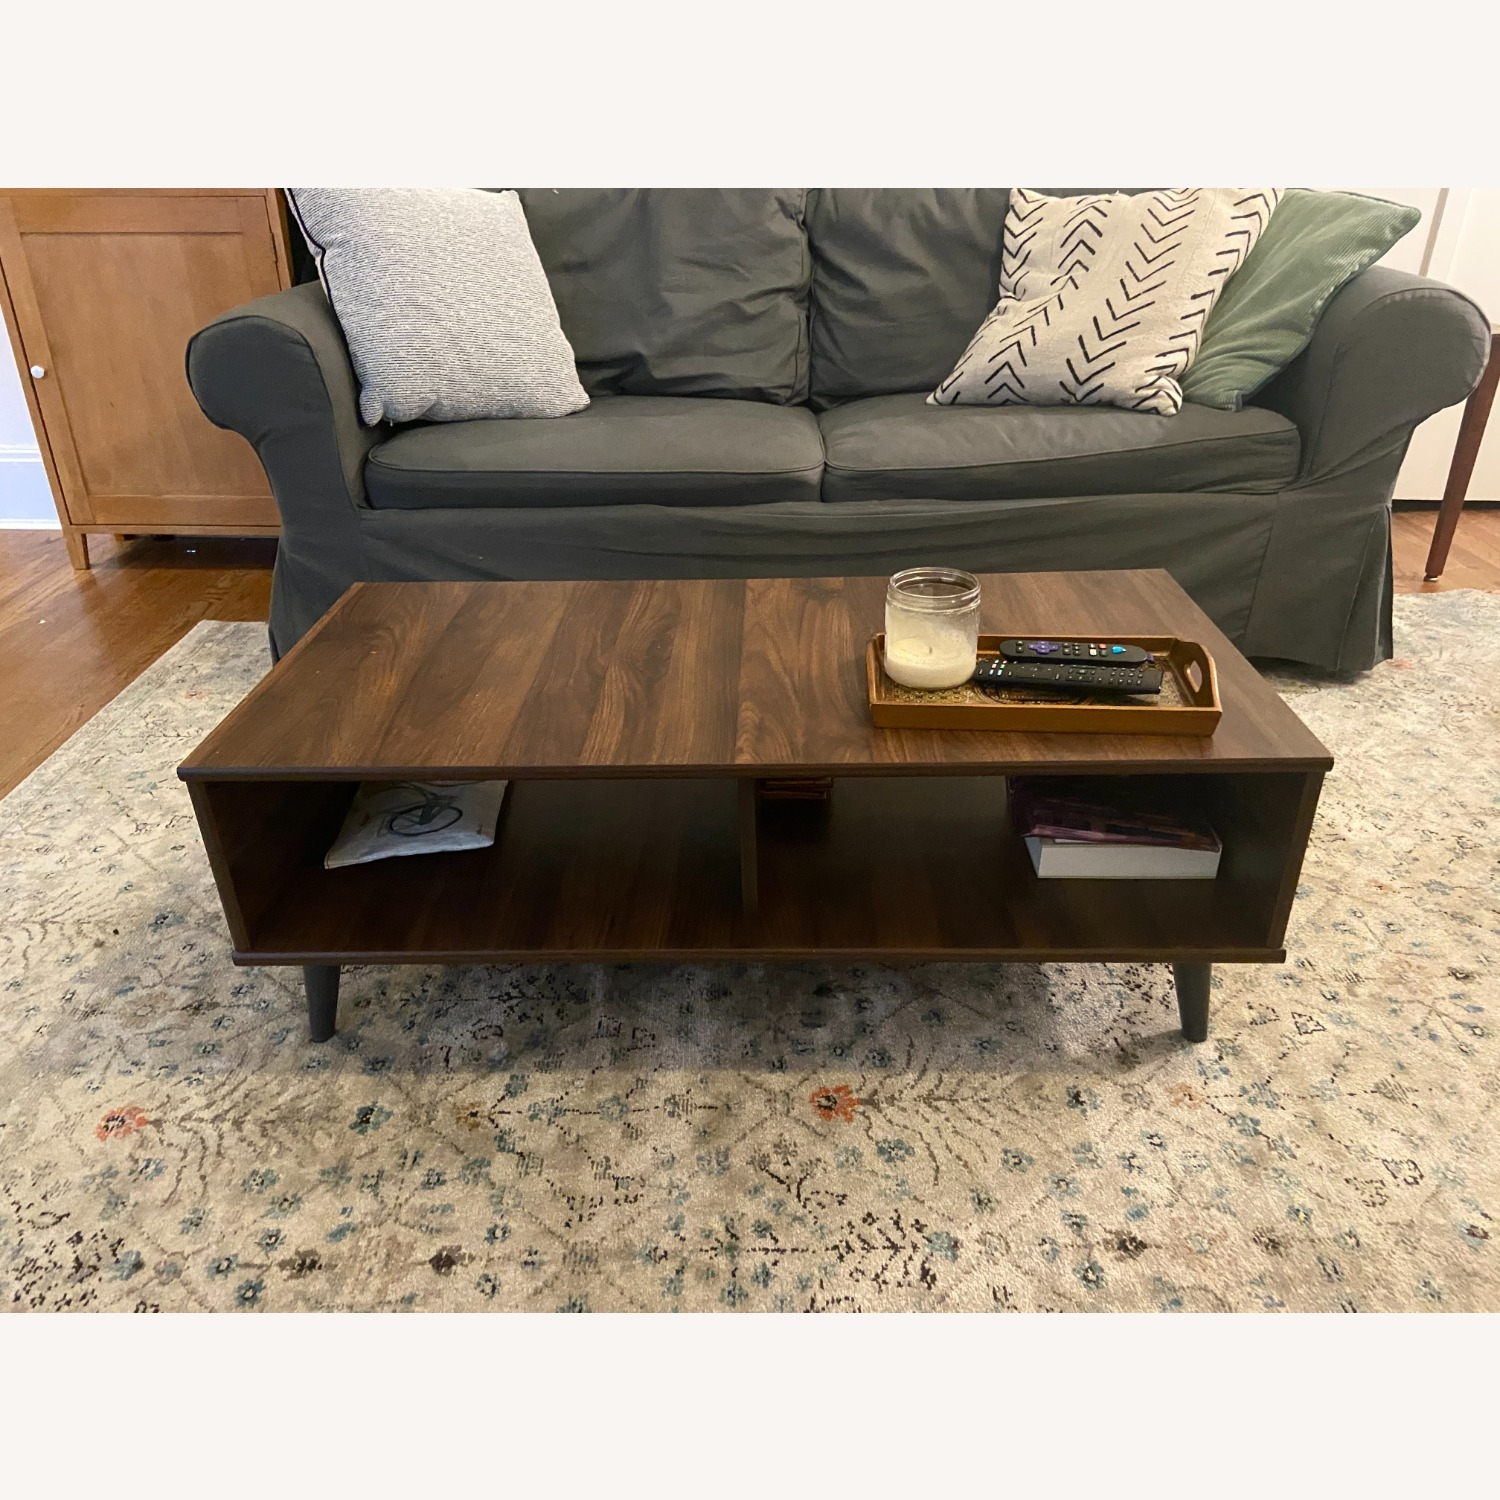 Hayneedle Dark Brown Rectangular Coffee Table - image-1